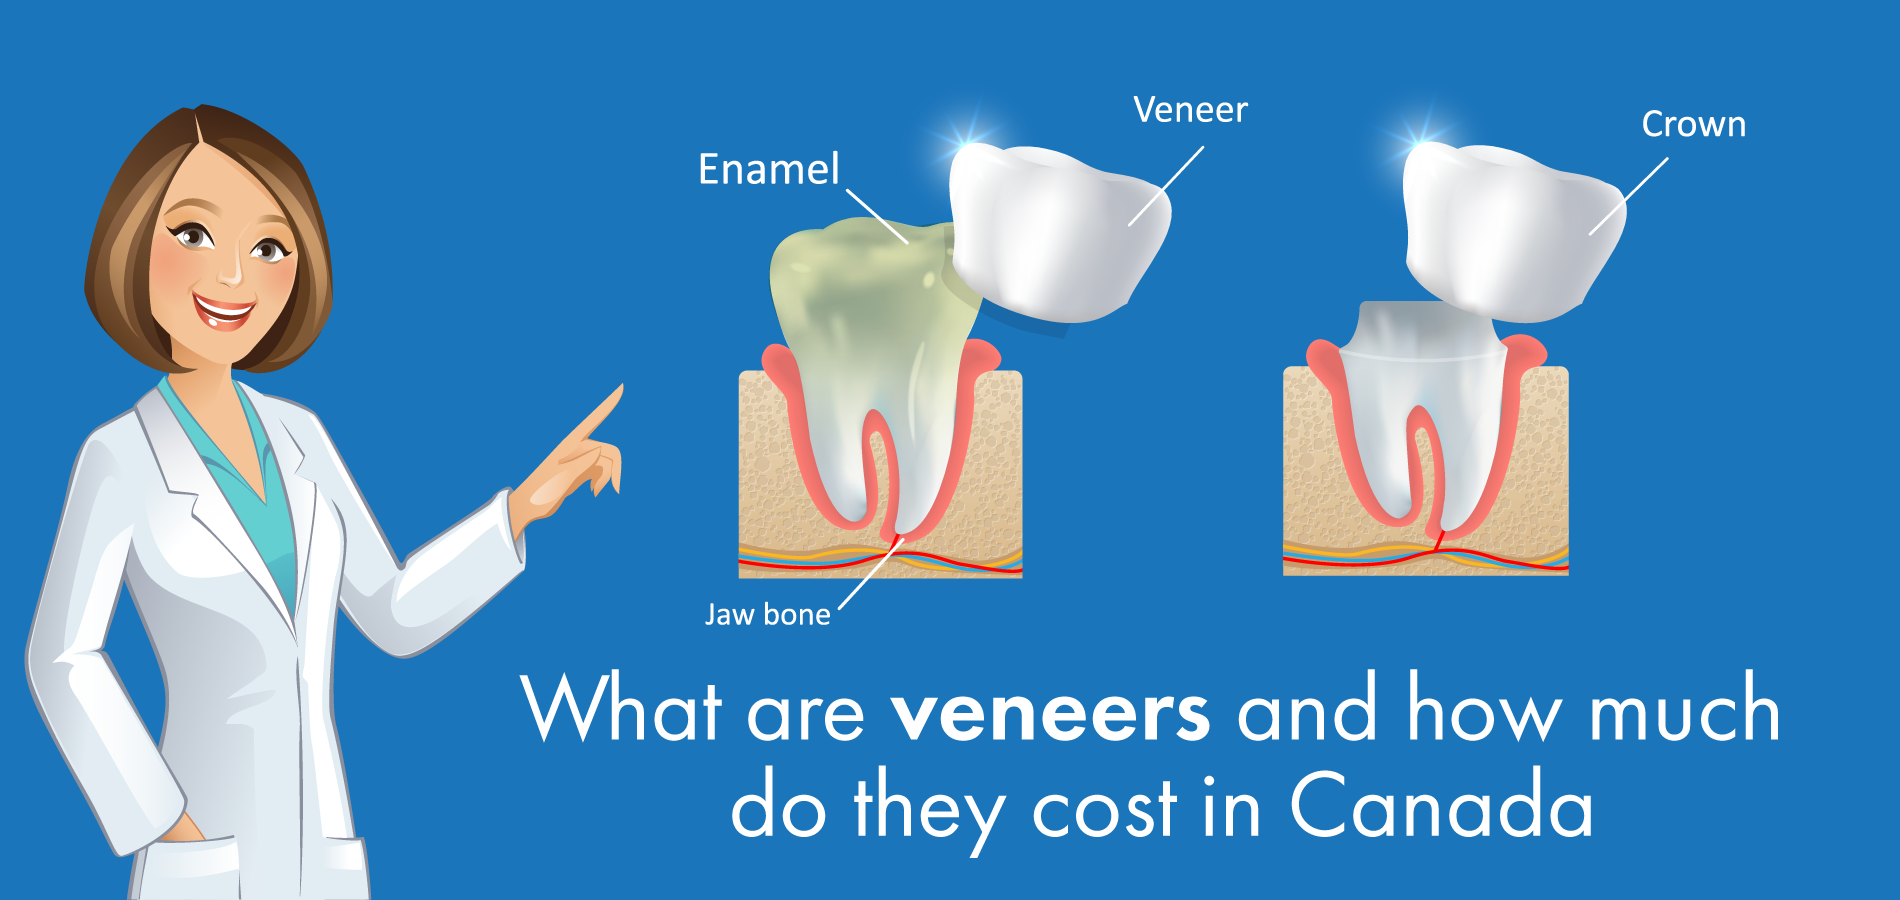 What are veneers and how much do they cost in Canada?